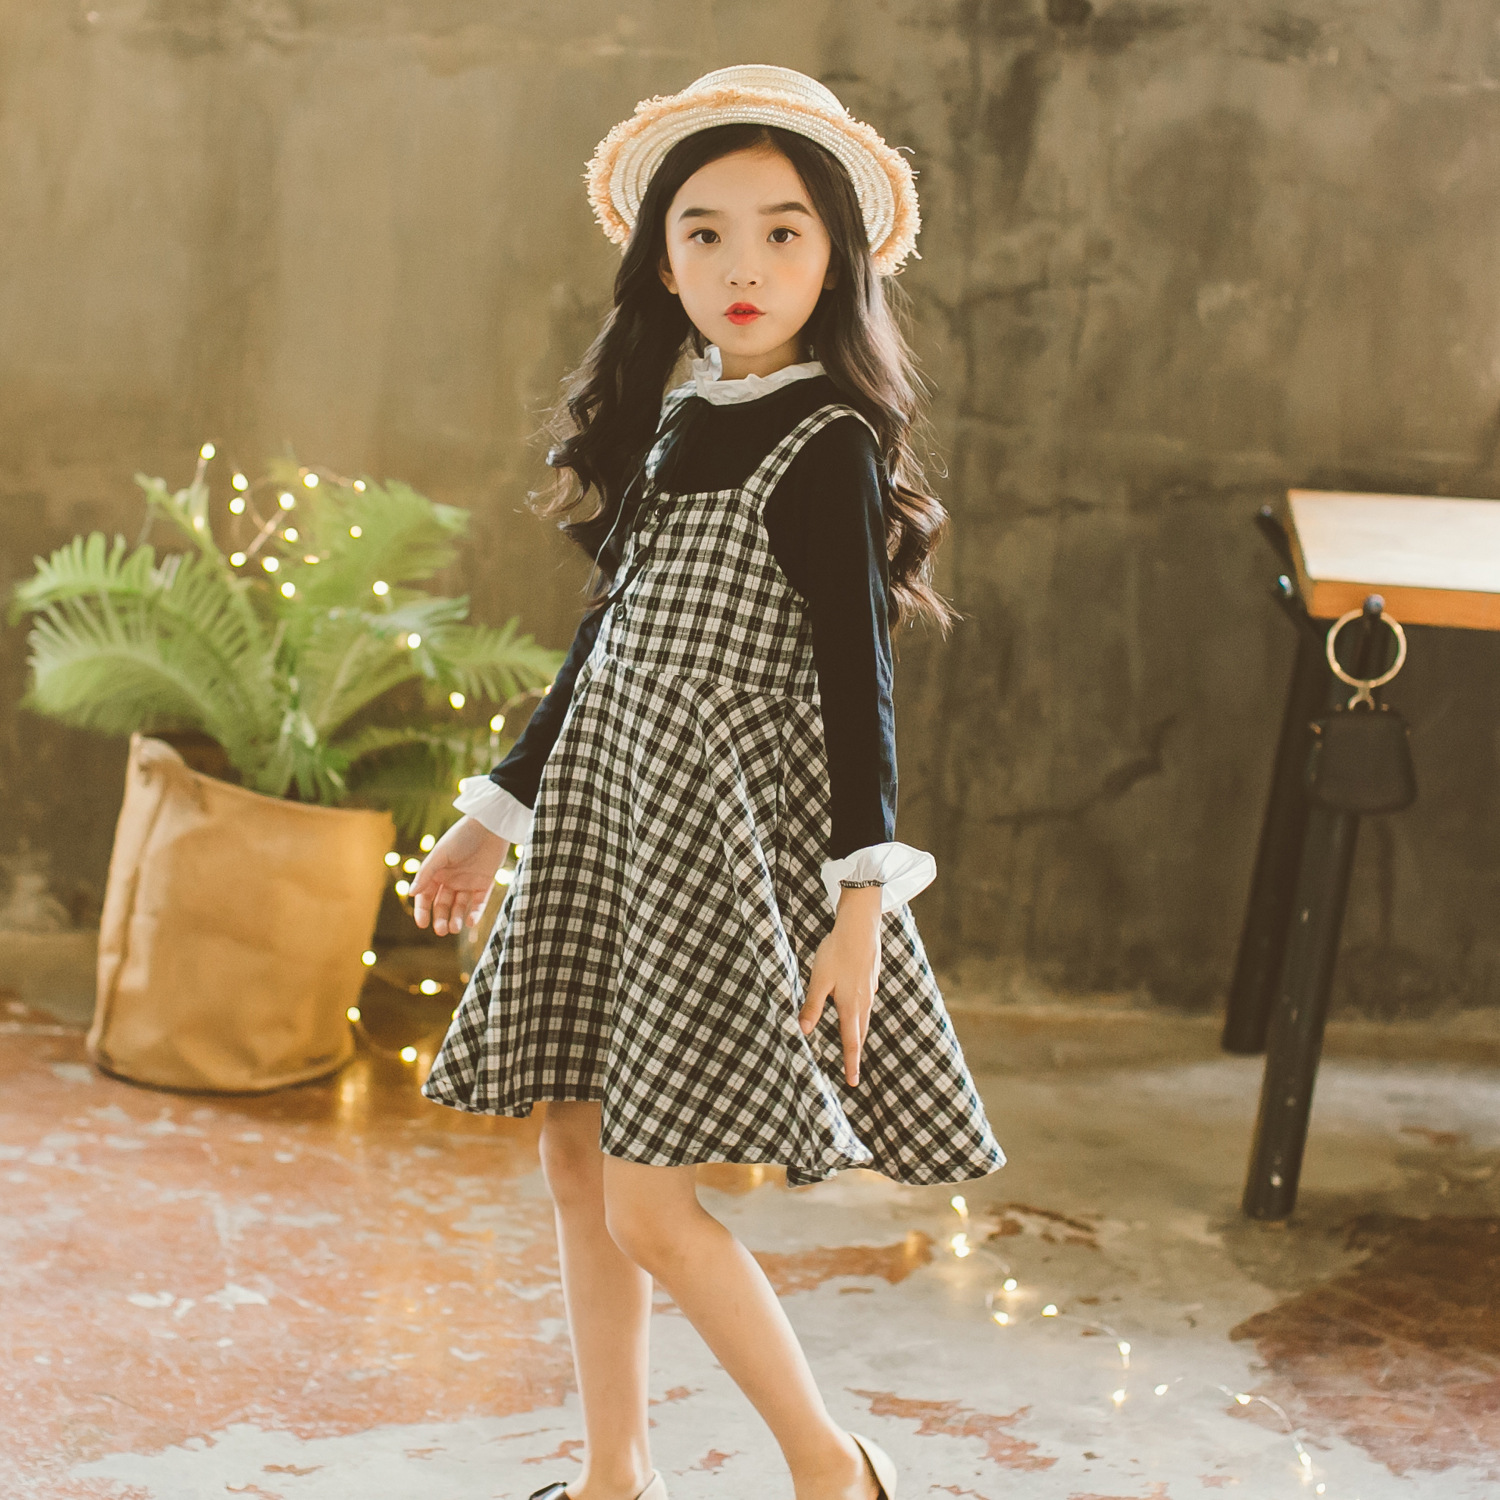 Girl Autumn and Winter Clothing 2018 New Brand Cotton T-shirt + Plaid Skirt Girl Skirt Suit Baby Strap Skirt 2 Pieces Sets CC935 children s garment 2017 summer new pattern girl school the wind of cotton t straps cowboy skirt two pieces suit